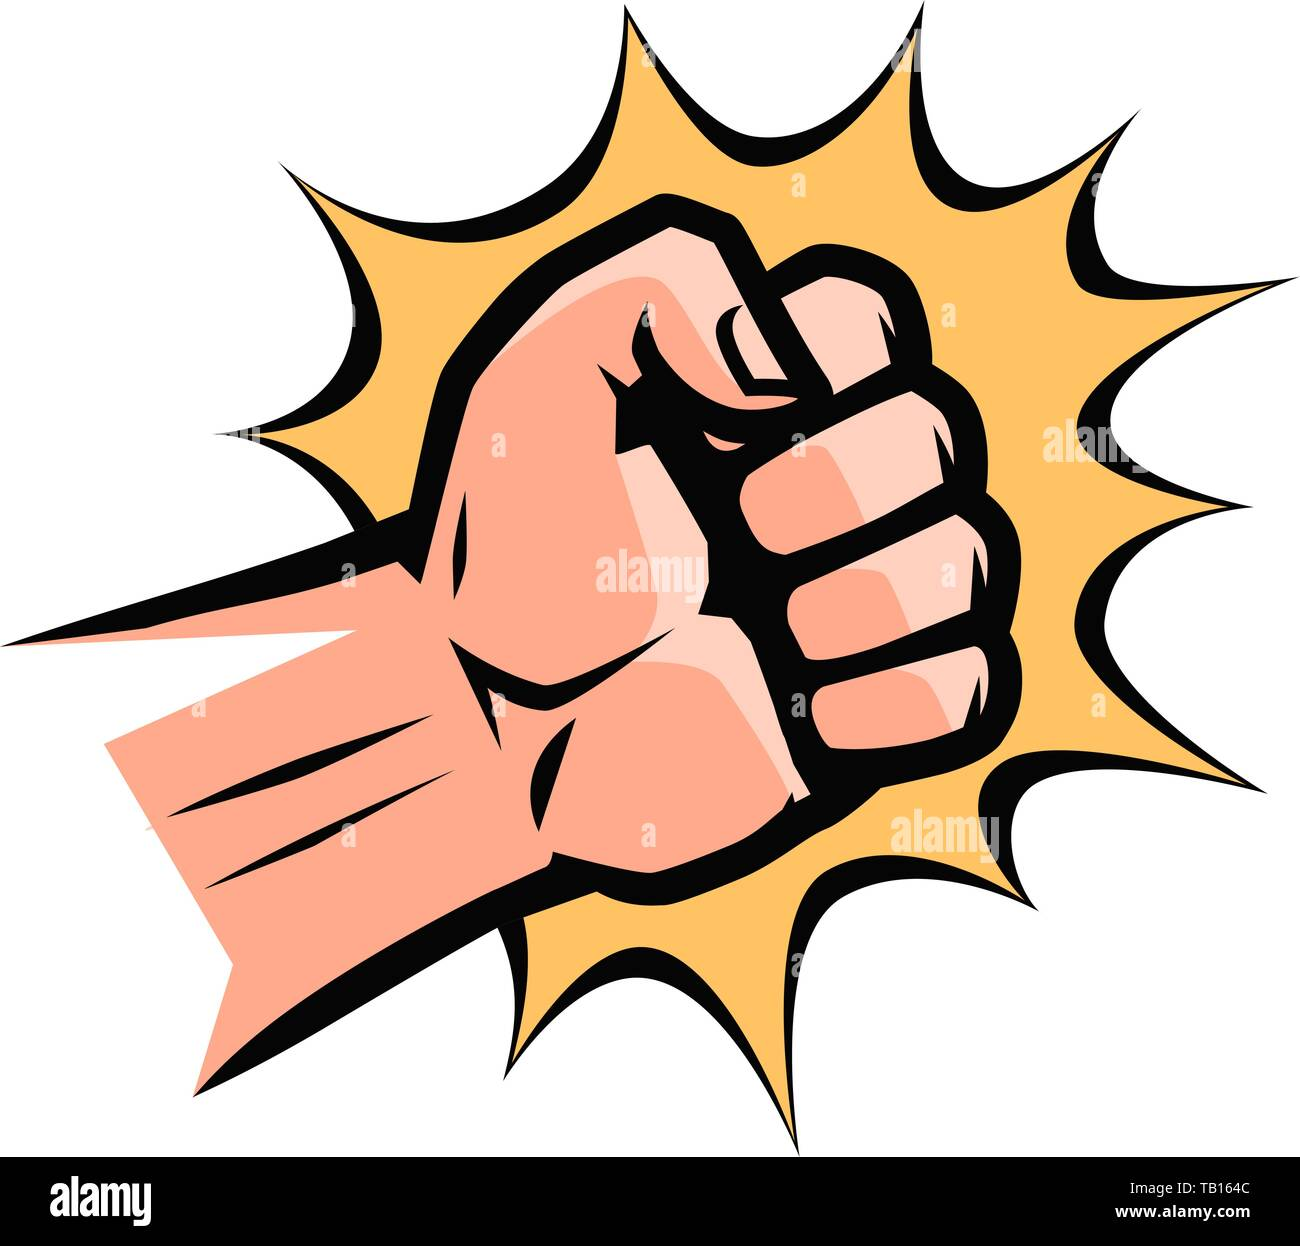 Punch, pop art retro comic style. Clenched fist, cartoon vector - Stock Image